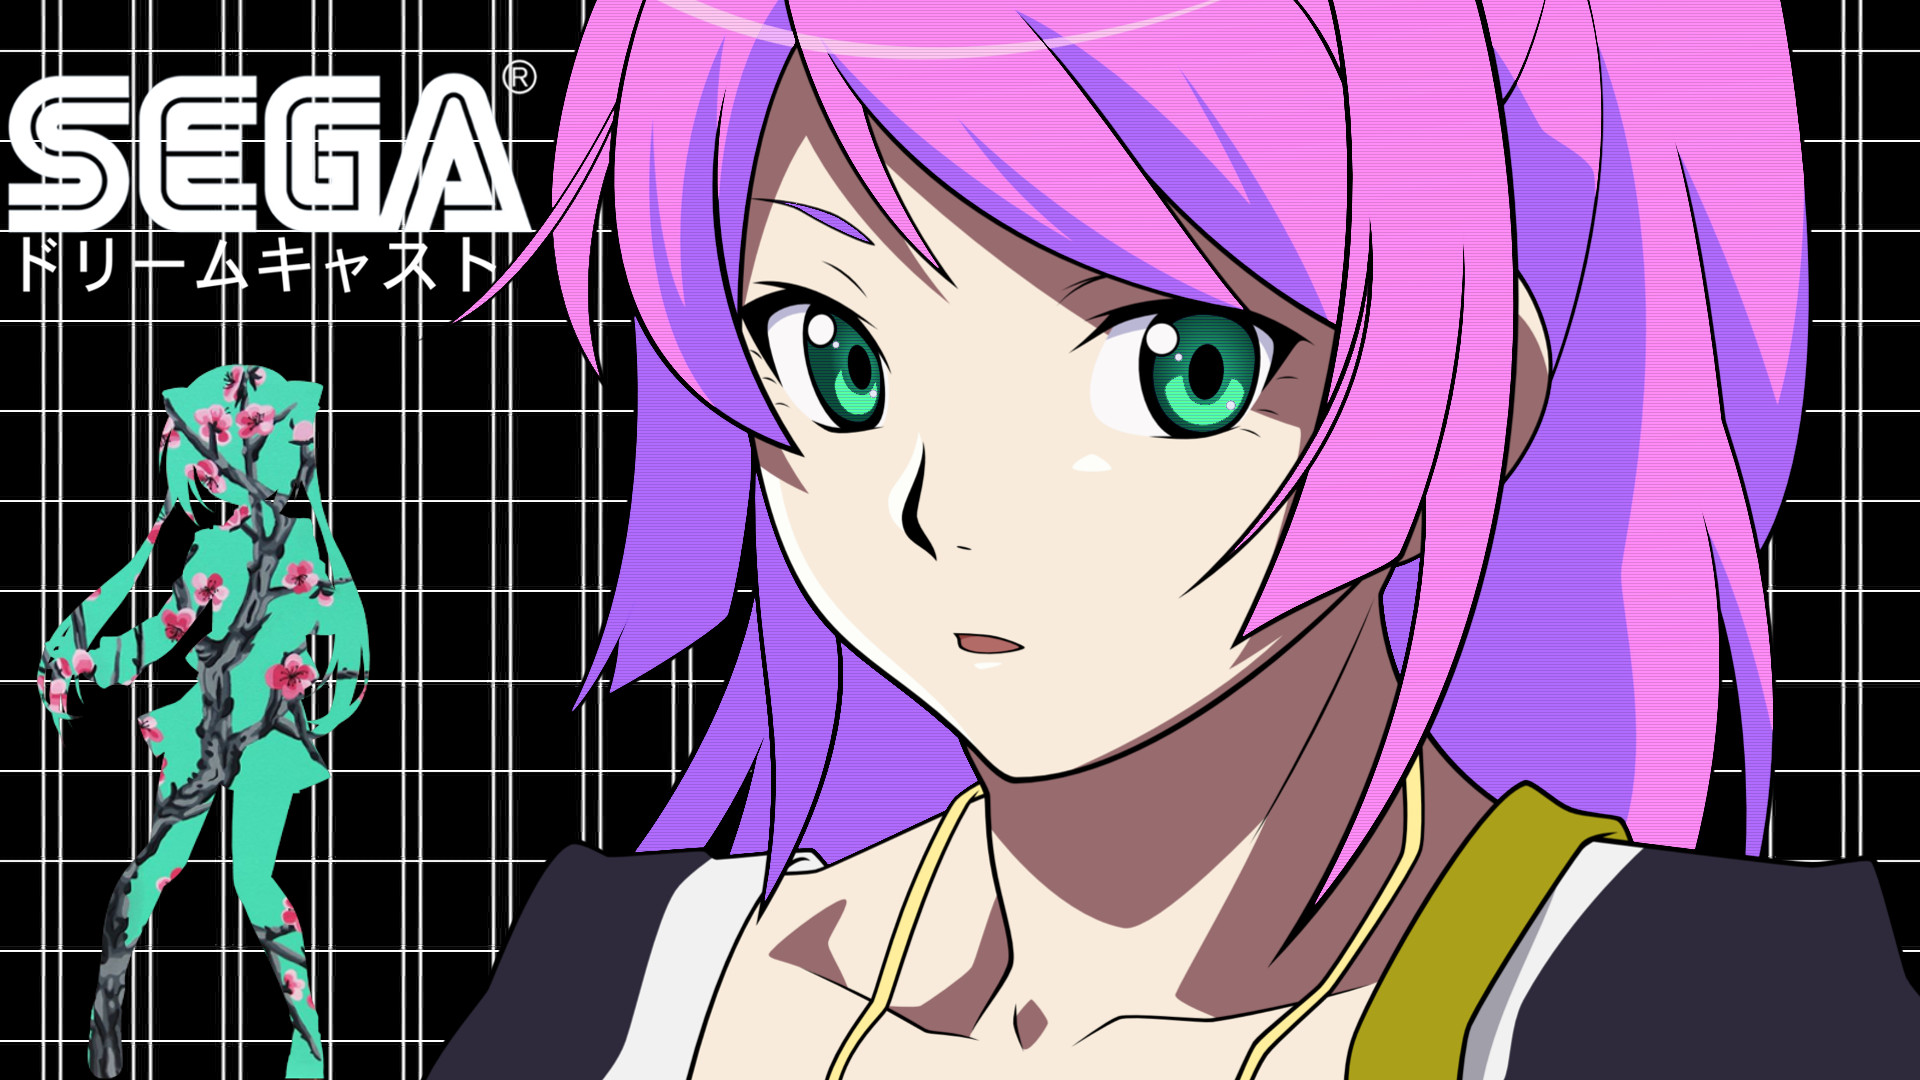 My Anime Vaporwave Wallpaper #11 by iamthebest052 on ...